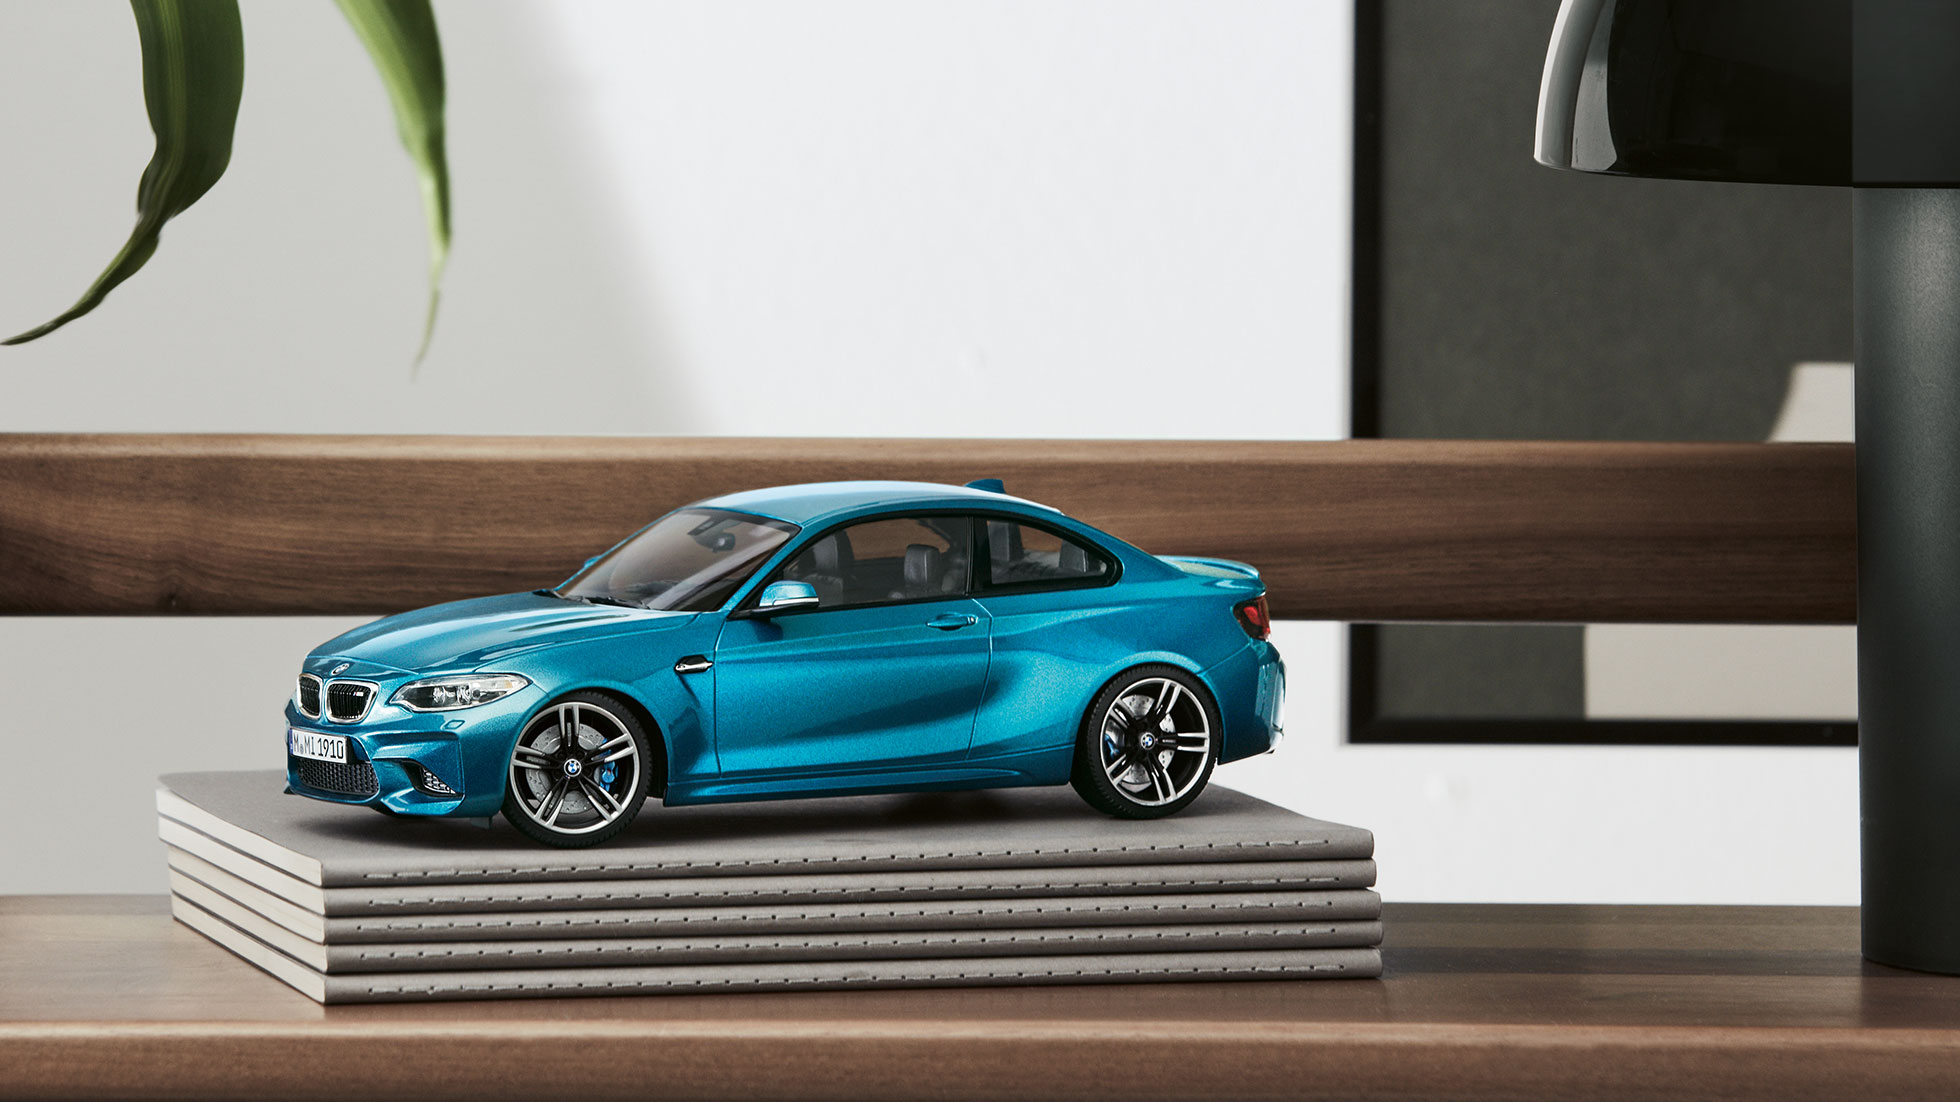 The picture shows a miniature of the BMW M2 in Long Beach Blue.